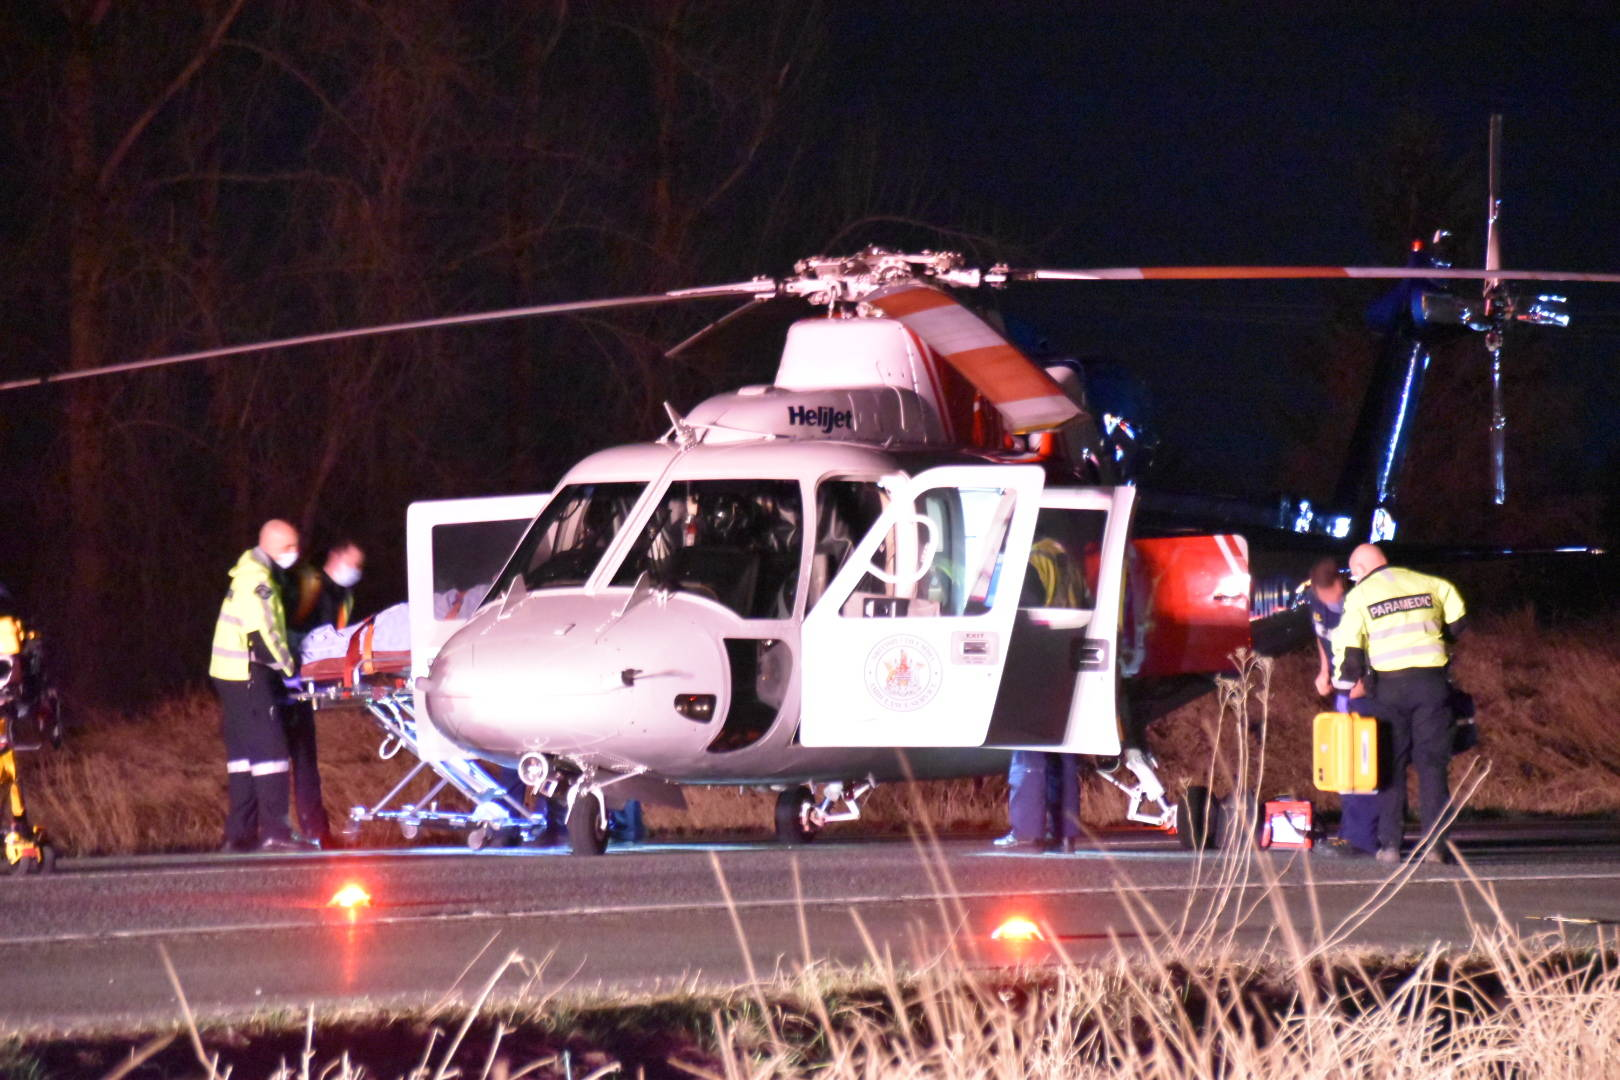 Emergency crews were called to a multi-vehicle crash eastbound on the Trans-Canada Highway, just east of 264th Street in Langley, around 8:30 p.m. on Monday, March 8, 2021. (Curtis Kreklau/Special to Langley Advance Times)